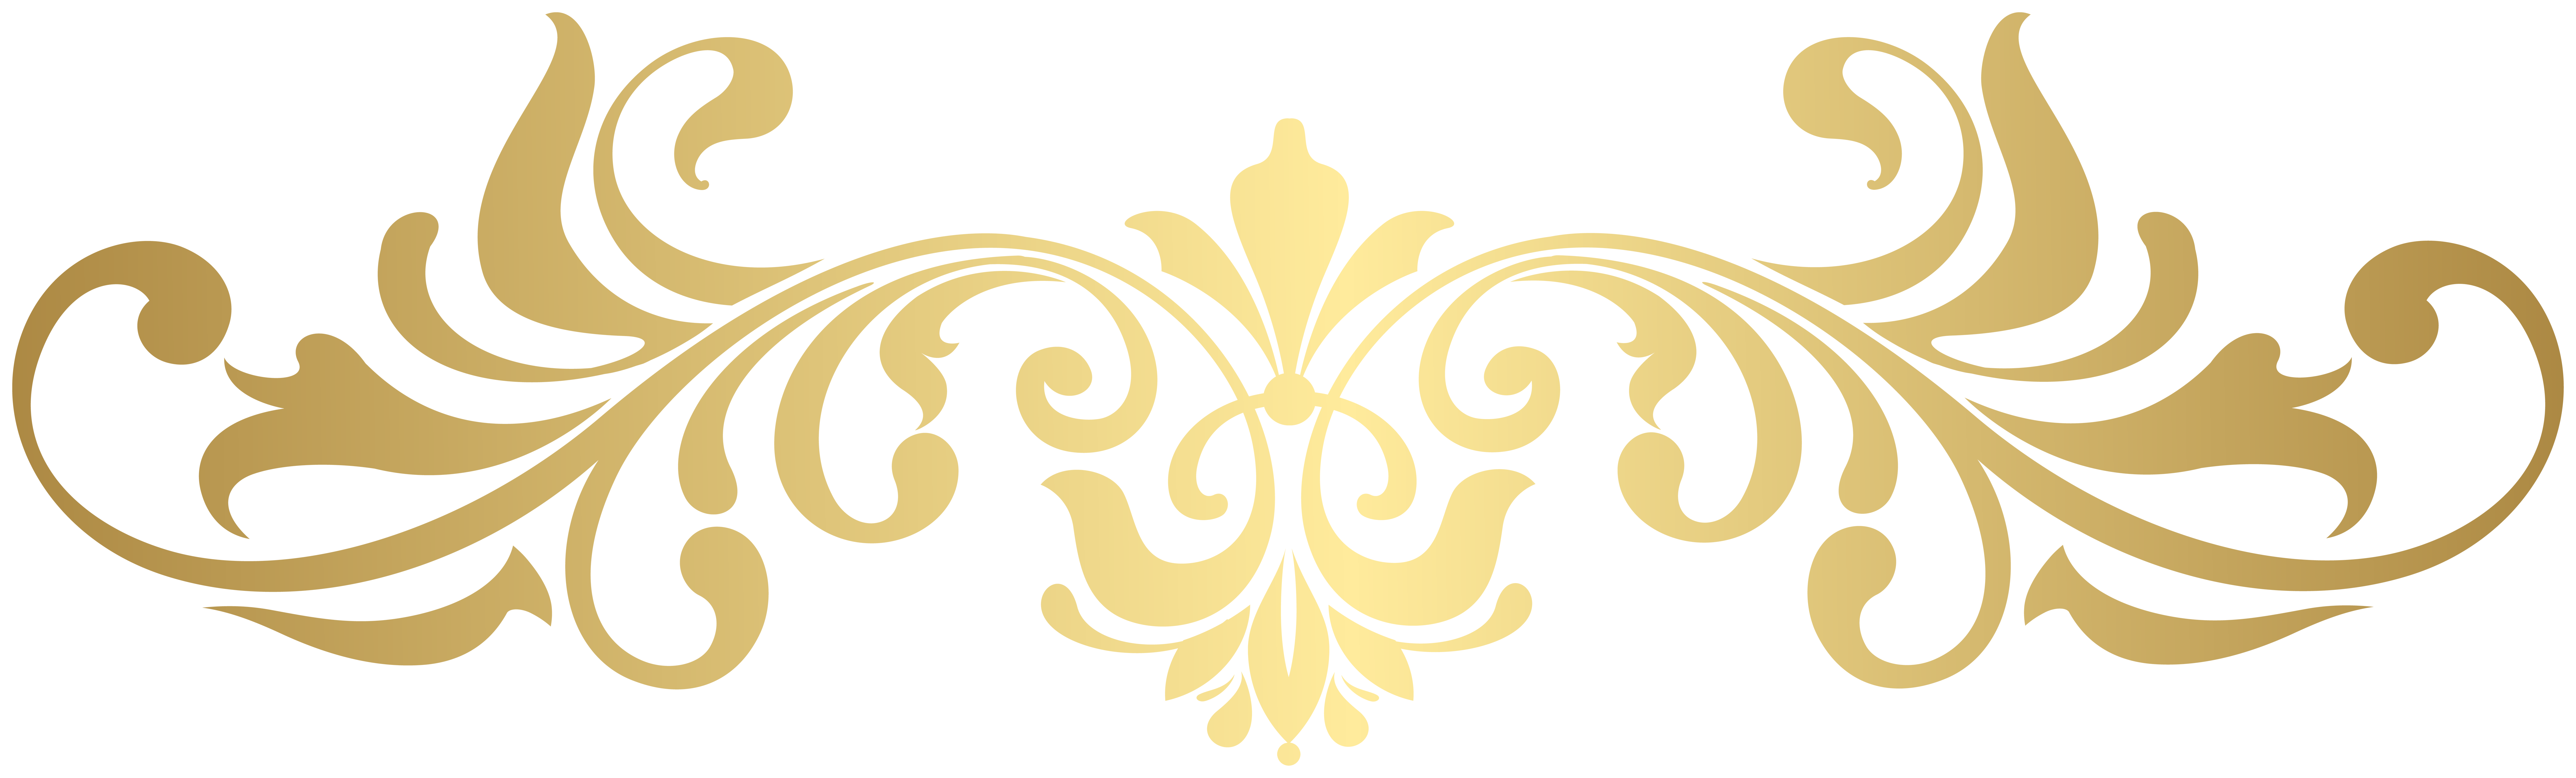 Gold Ornaments Png & Free Gold Ornaments.png Transparent.